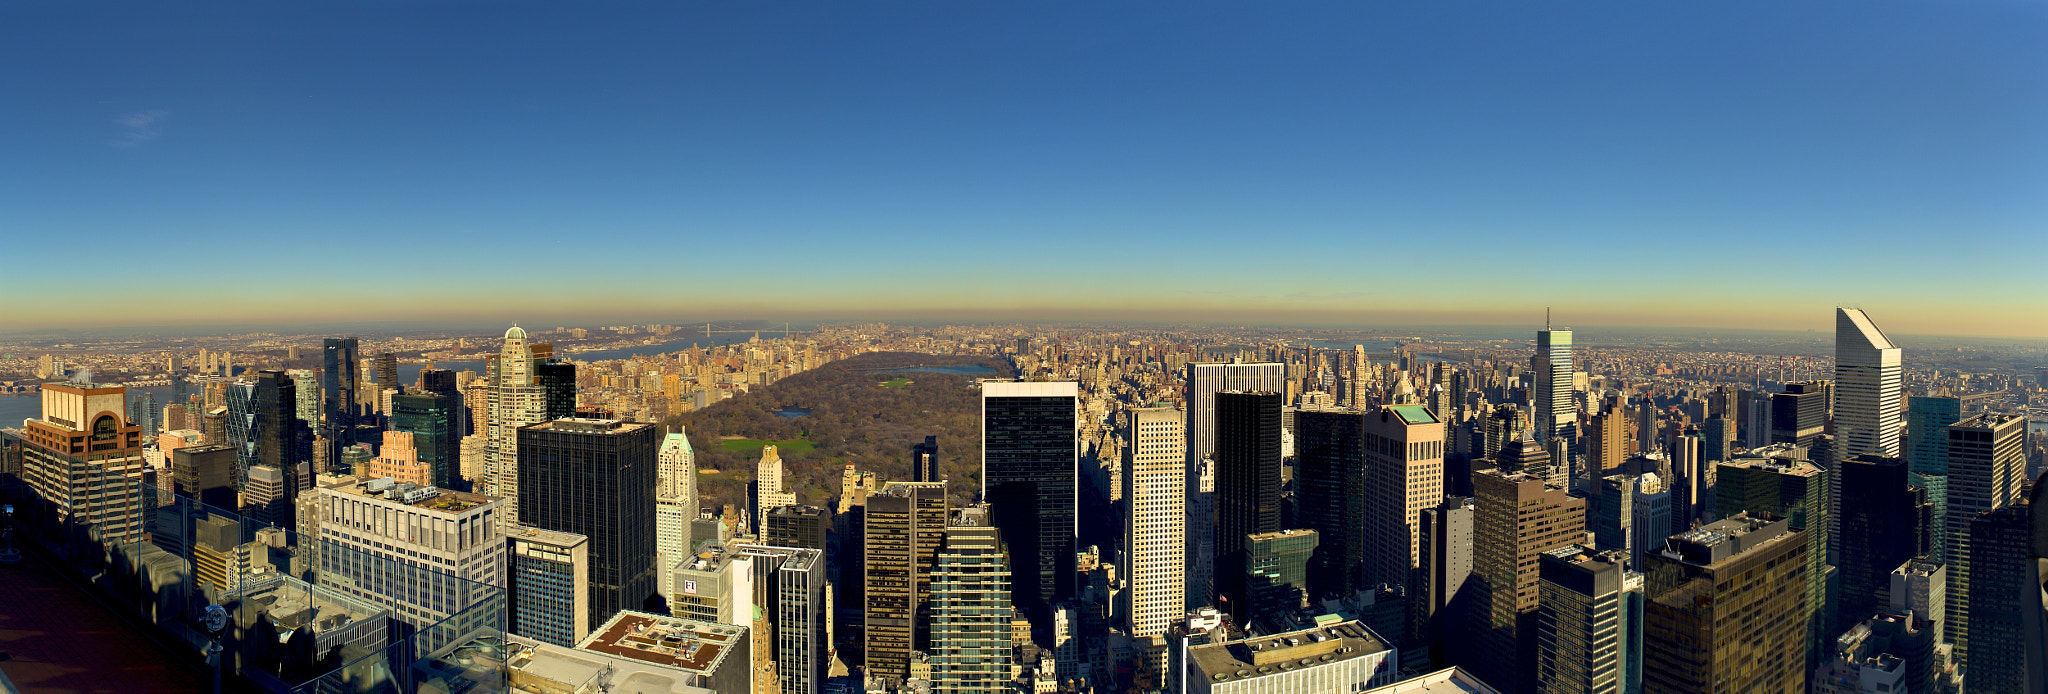 Photograph Top of the Rock by world_image on 500px